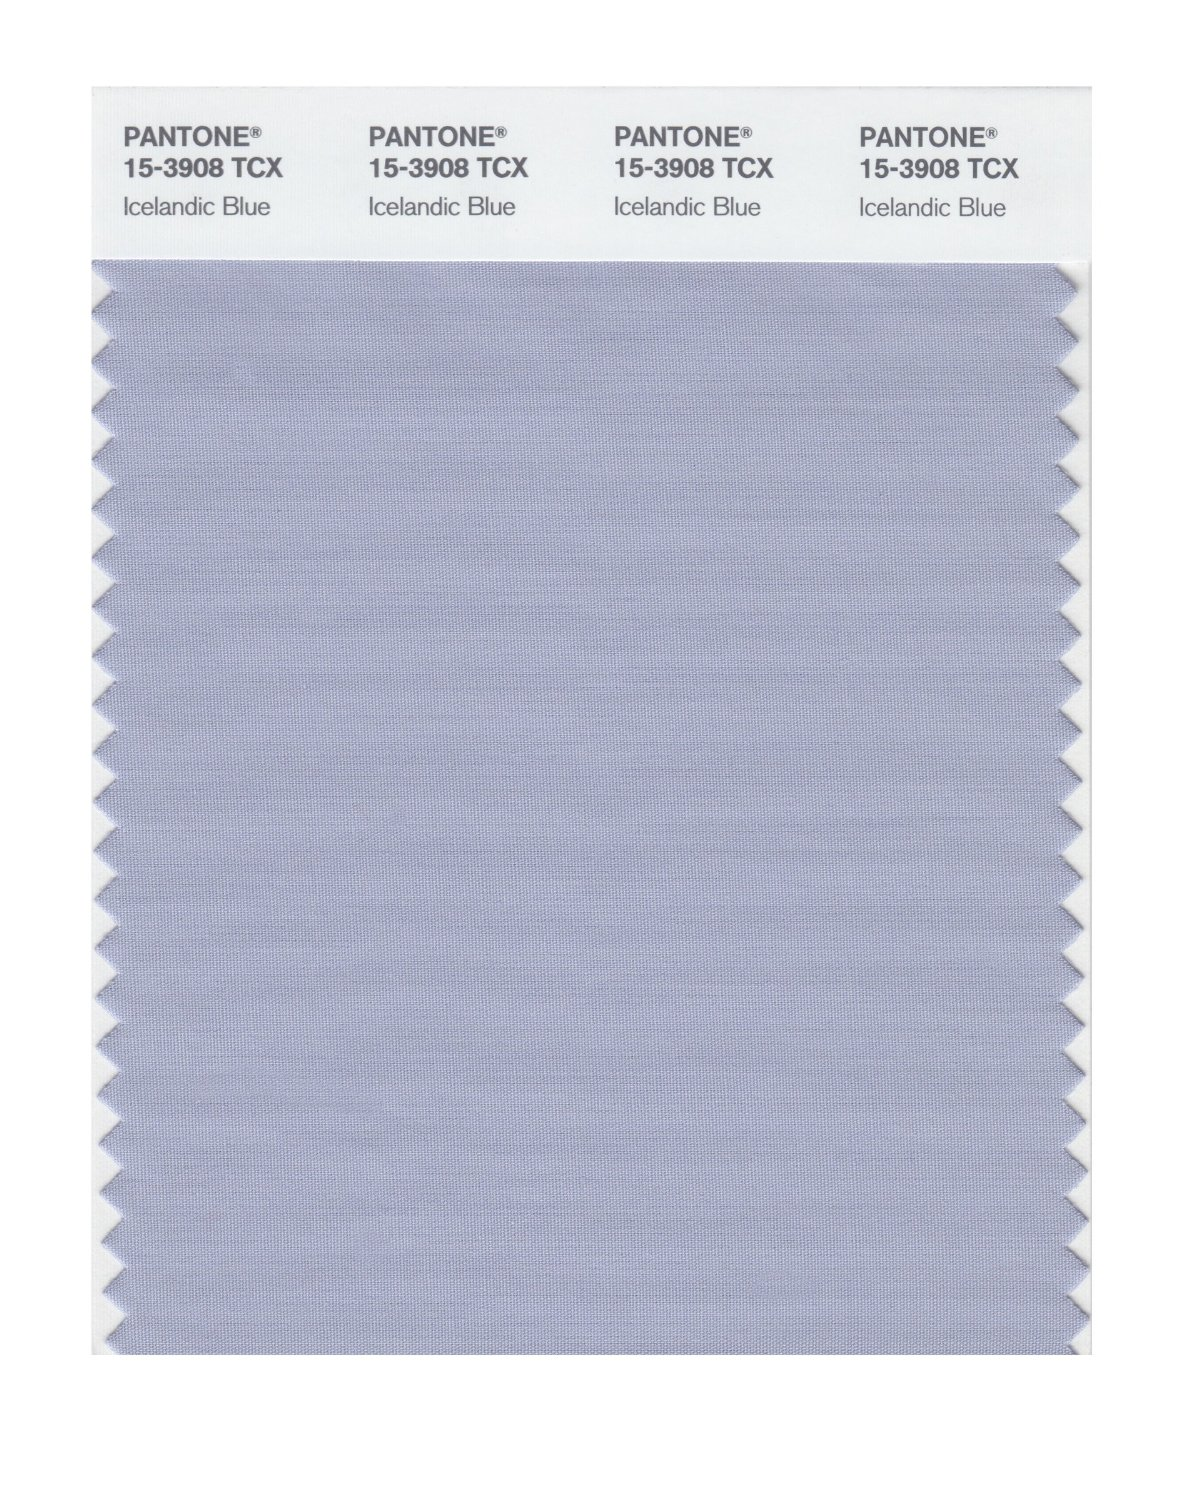 Pantone Smart Swatch 15-3908 Icelandic Blue